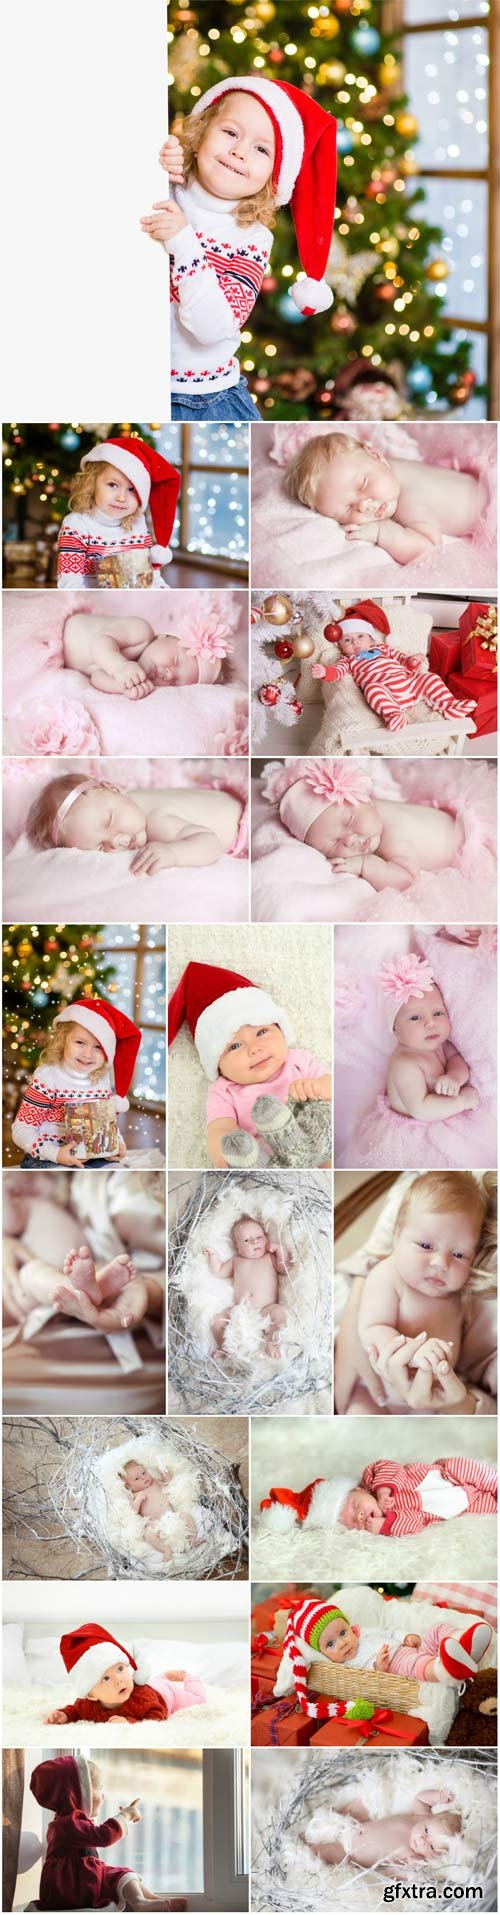 New Year and Christmas stock photos №60